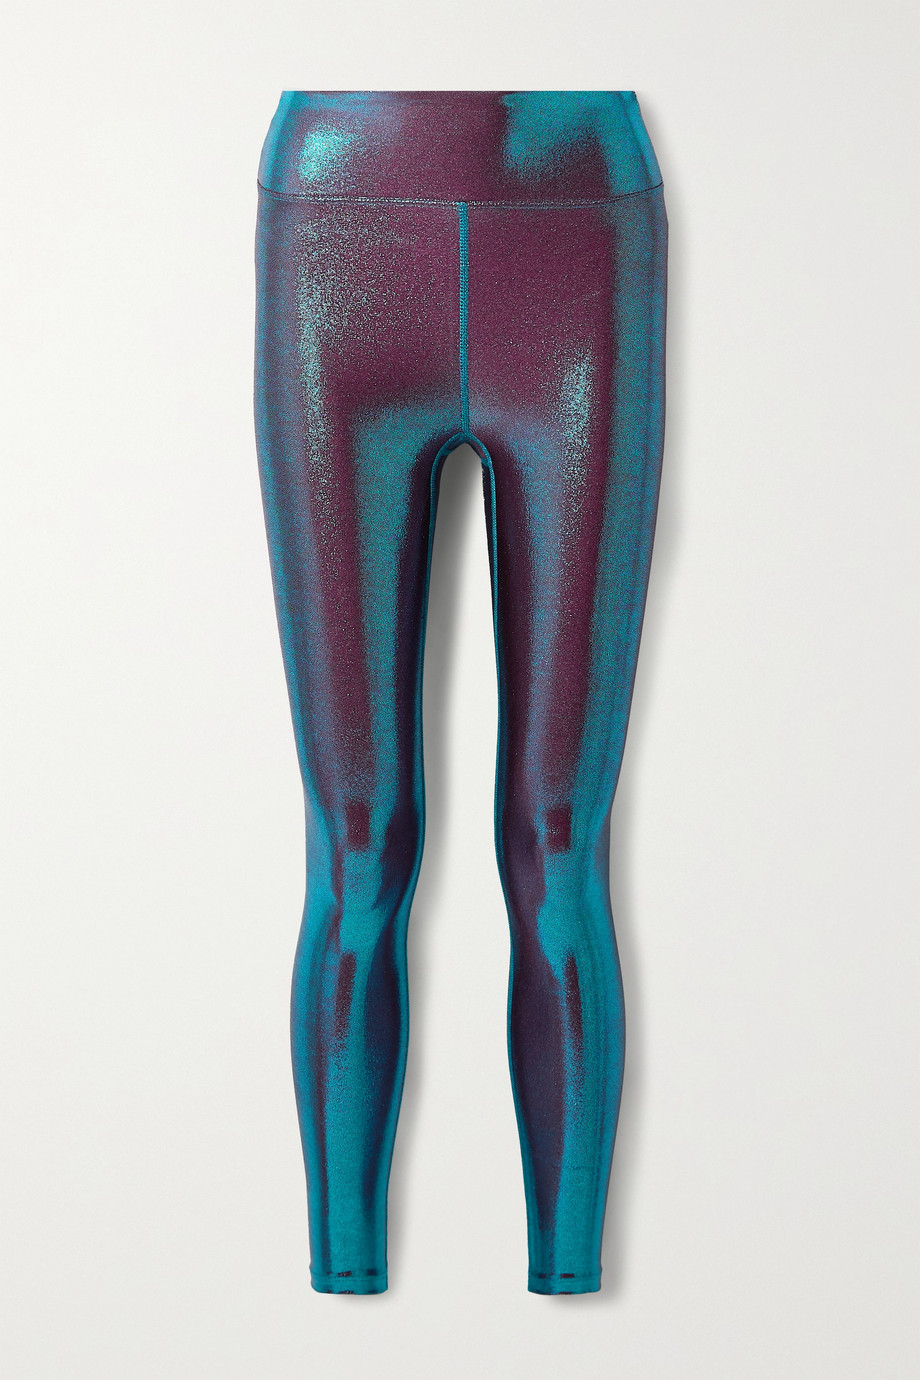 HEROINE SPORT Marvel iridescent stretch leggings